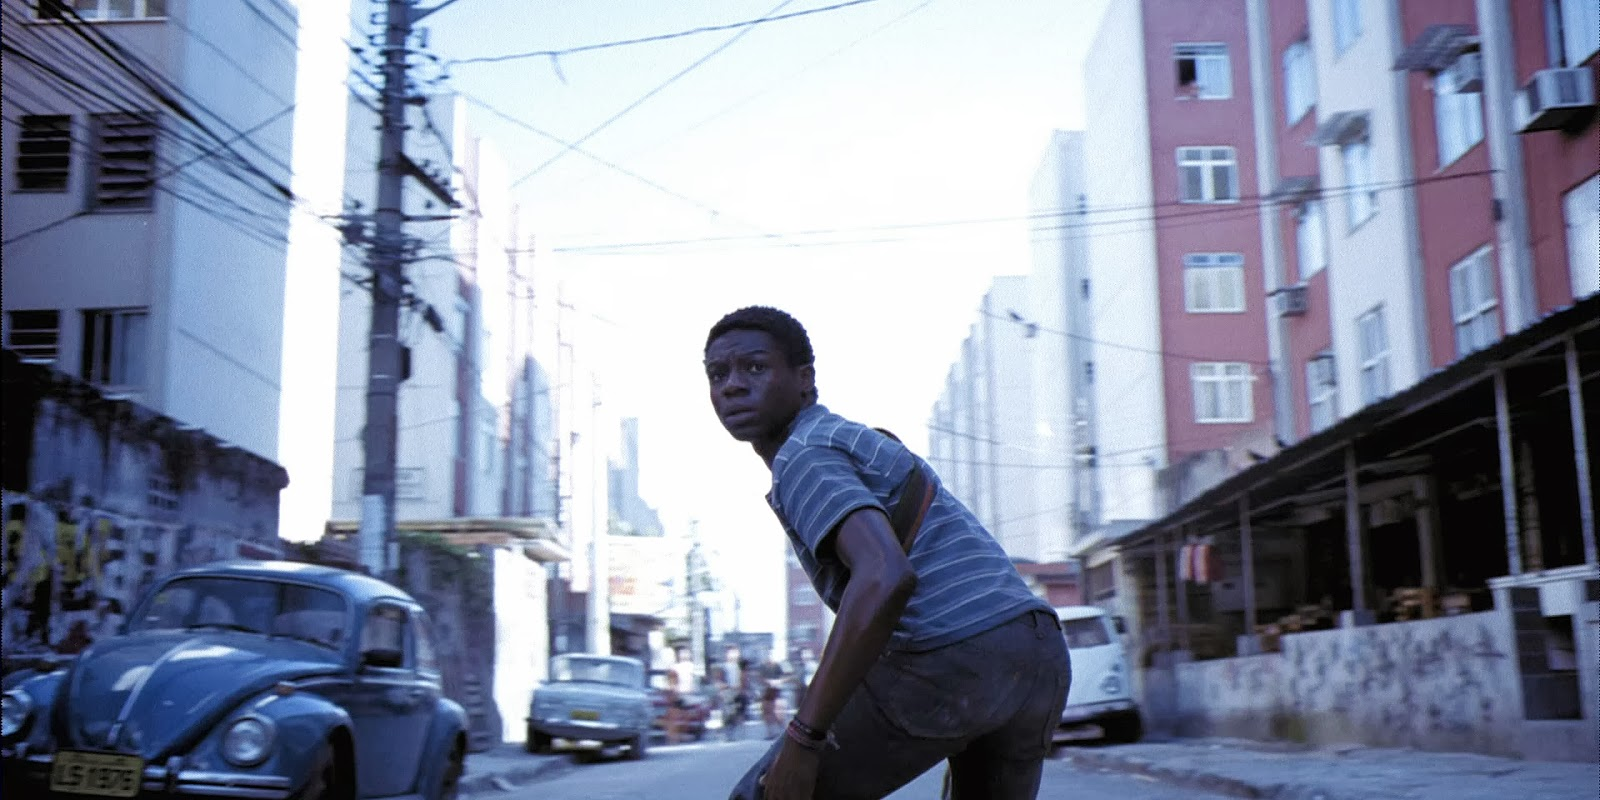 city of god 2002 represents violence This is something i am writing for my sociology class the assignment asks us to pick a certain subculture out of a movie of book, and describe their morals, values.